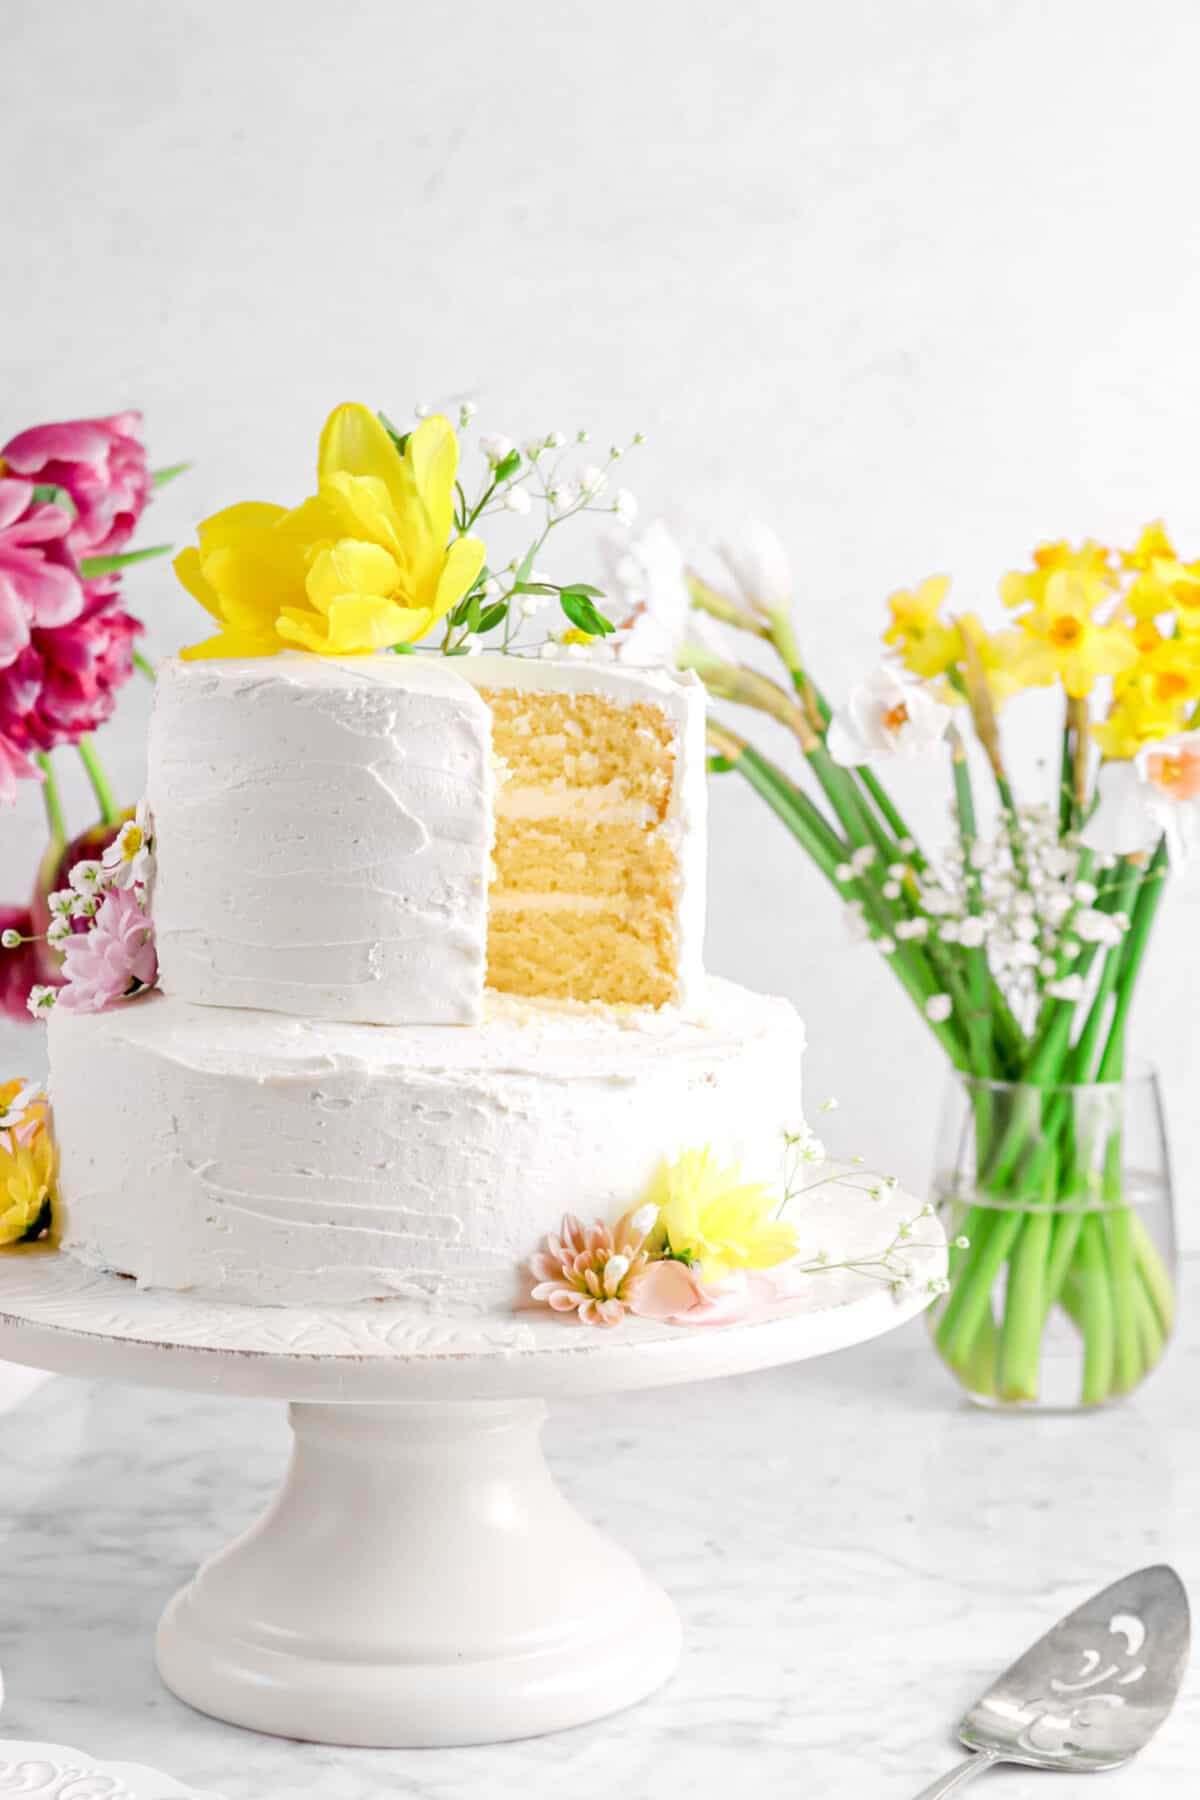 cake on white cake stand with flowers and slice missing from top tier